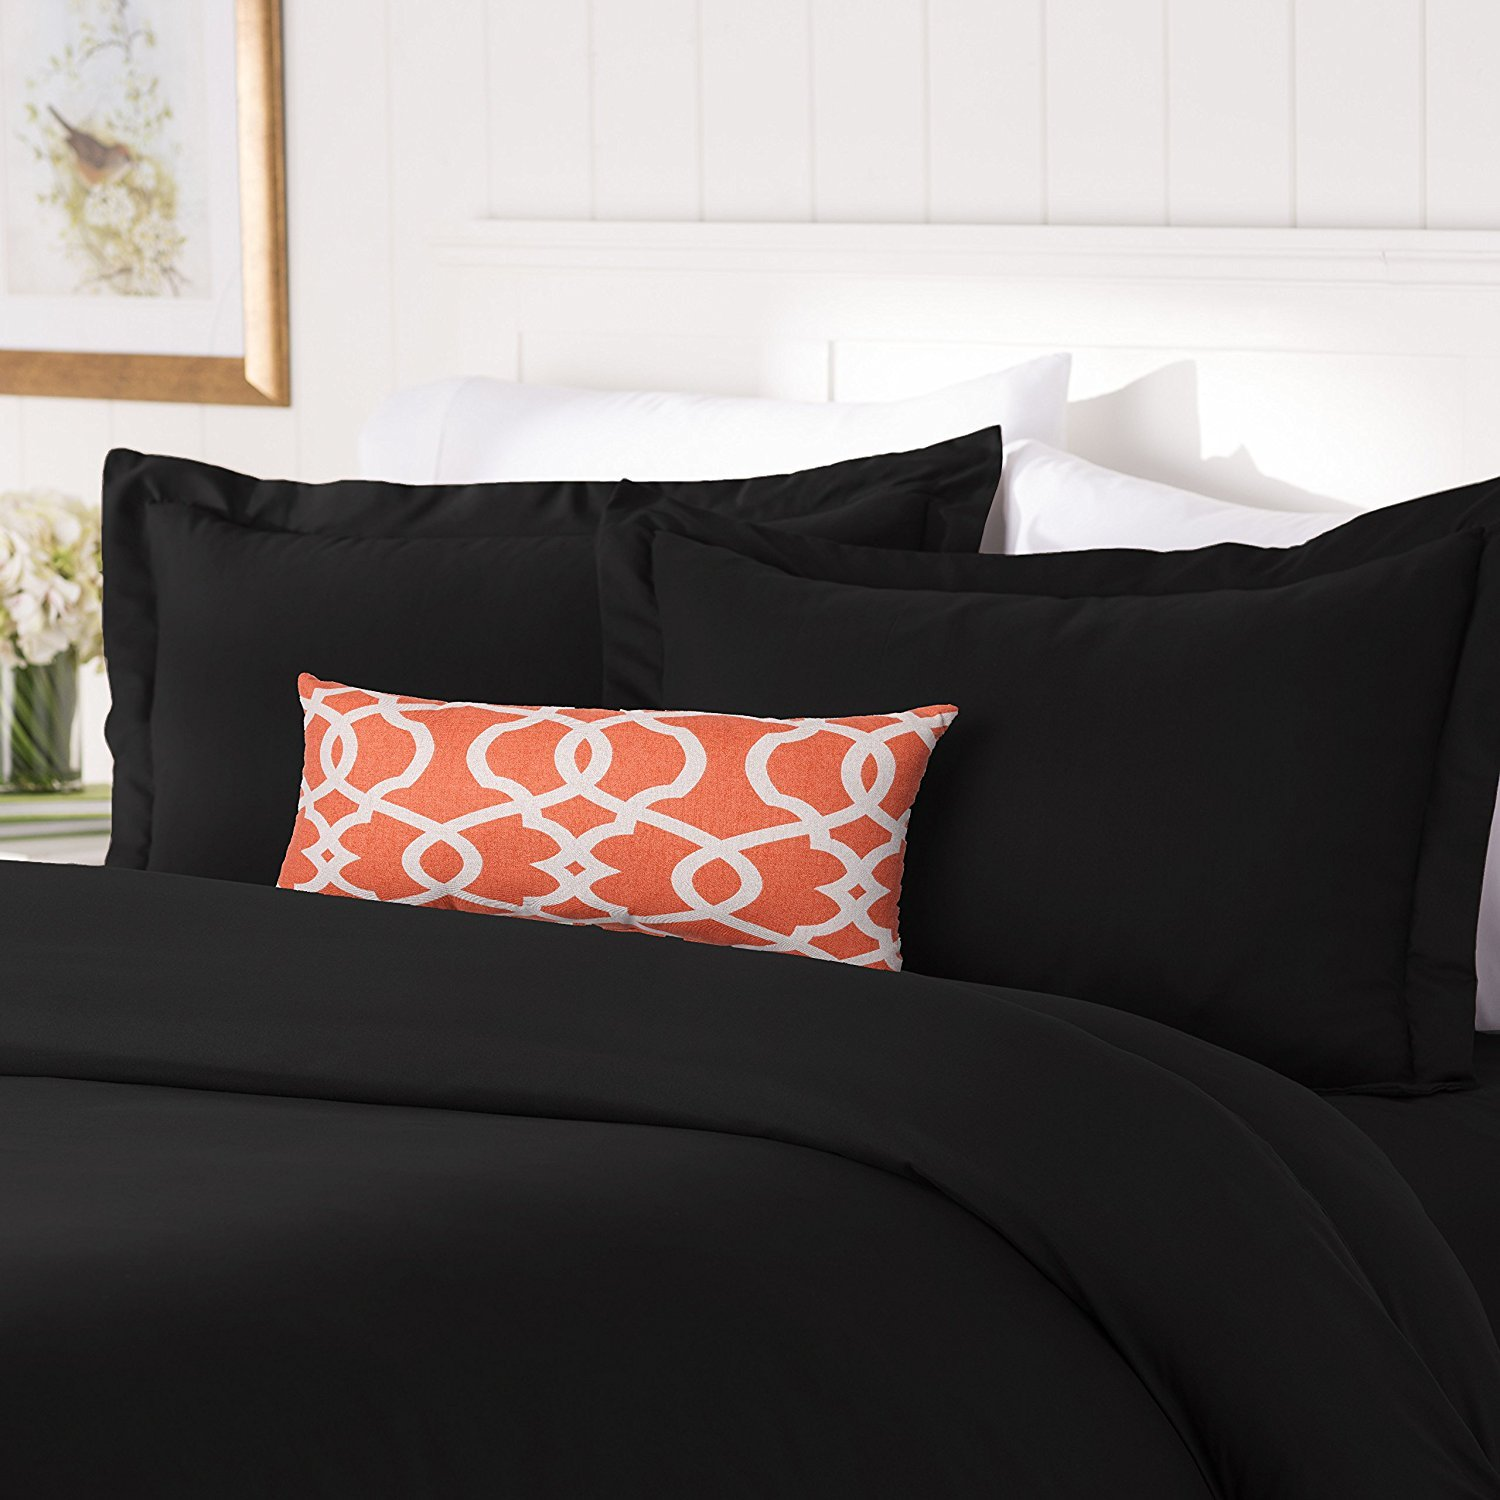 Elegant Comfort #1 Best Bedding Duvet Cover Set! 1500 Thread Count Egyptian Quality Luxurious Silky-Soft Wrinkle Free 2-Piece Duvet Cover Set, Twin/Twin XL, Black FBA_COMINHKPR131068